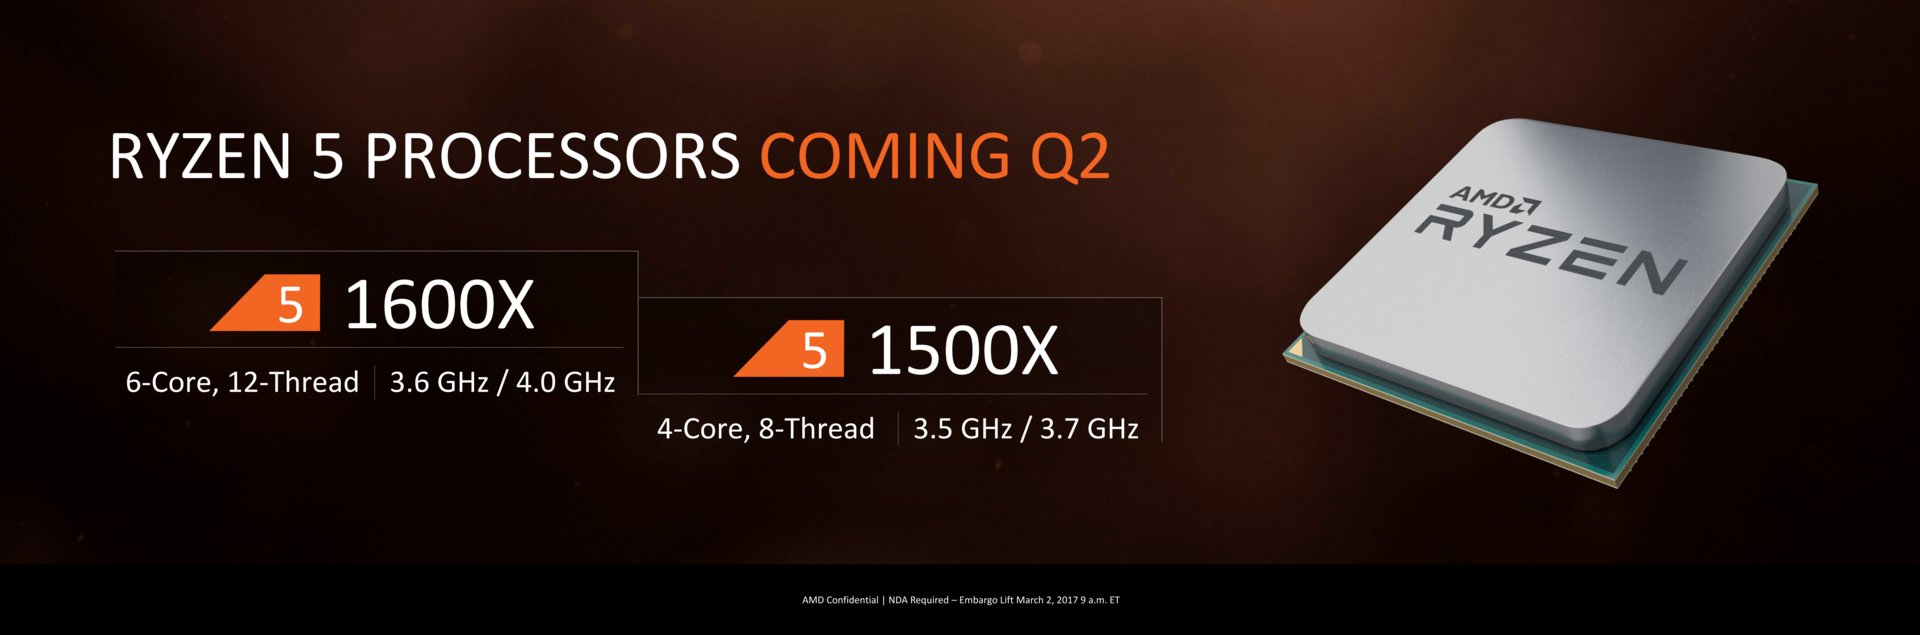 Overclockers UK says that AMD's Ryzen 5 CPUs will release in a